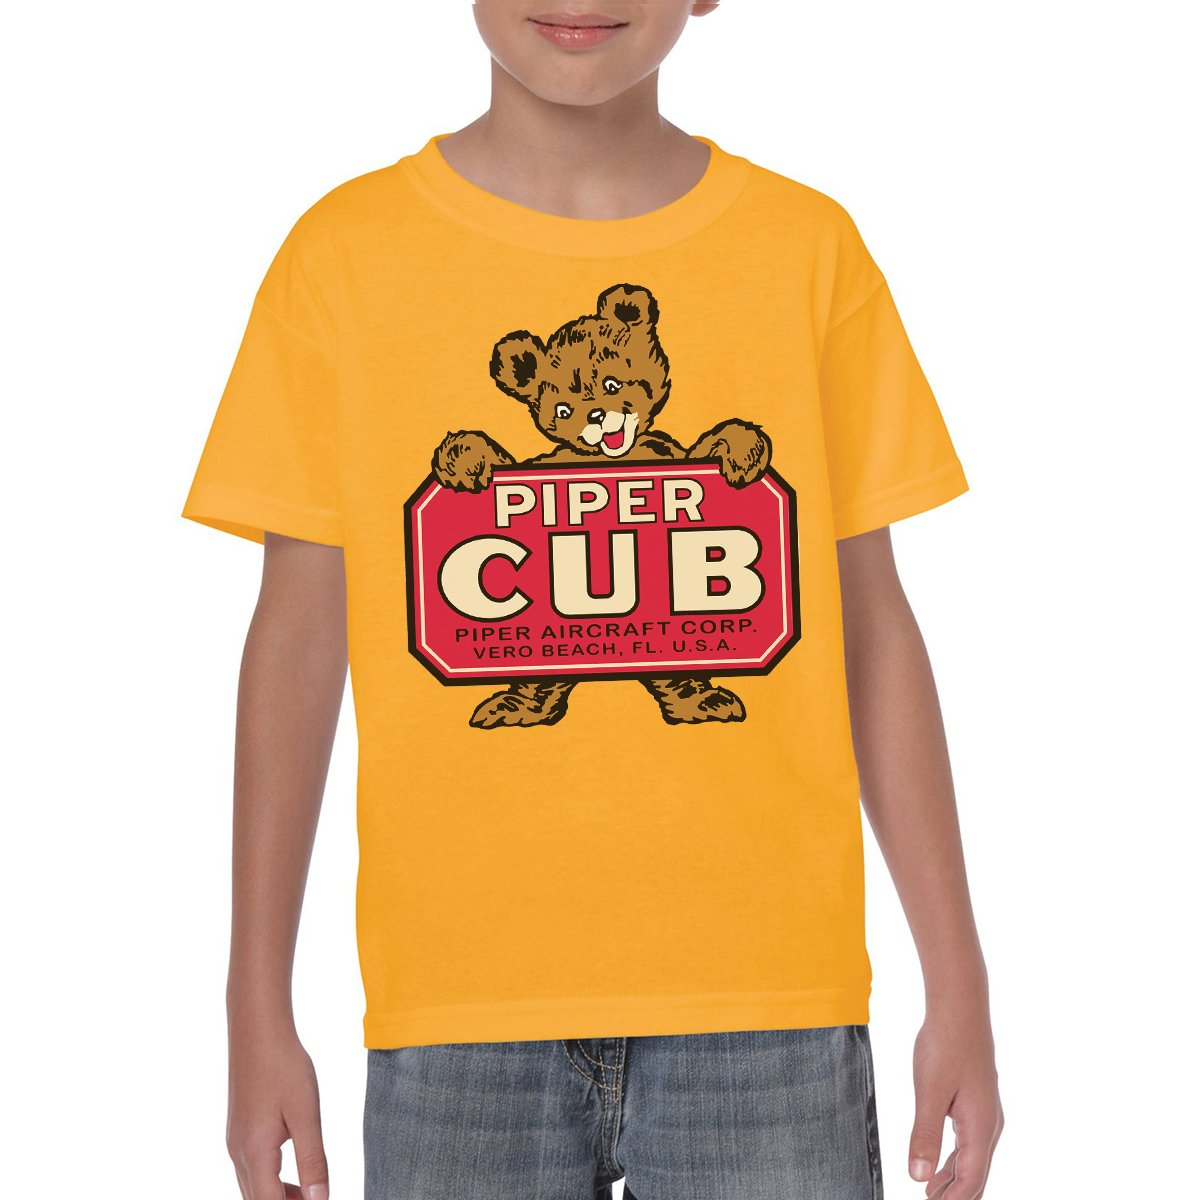 PIPER CUB Youth Semi-Fitted T-Shirt